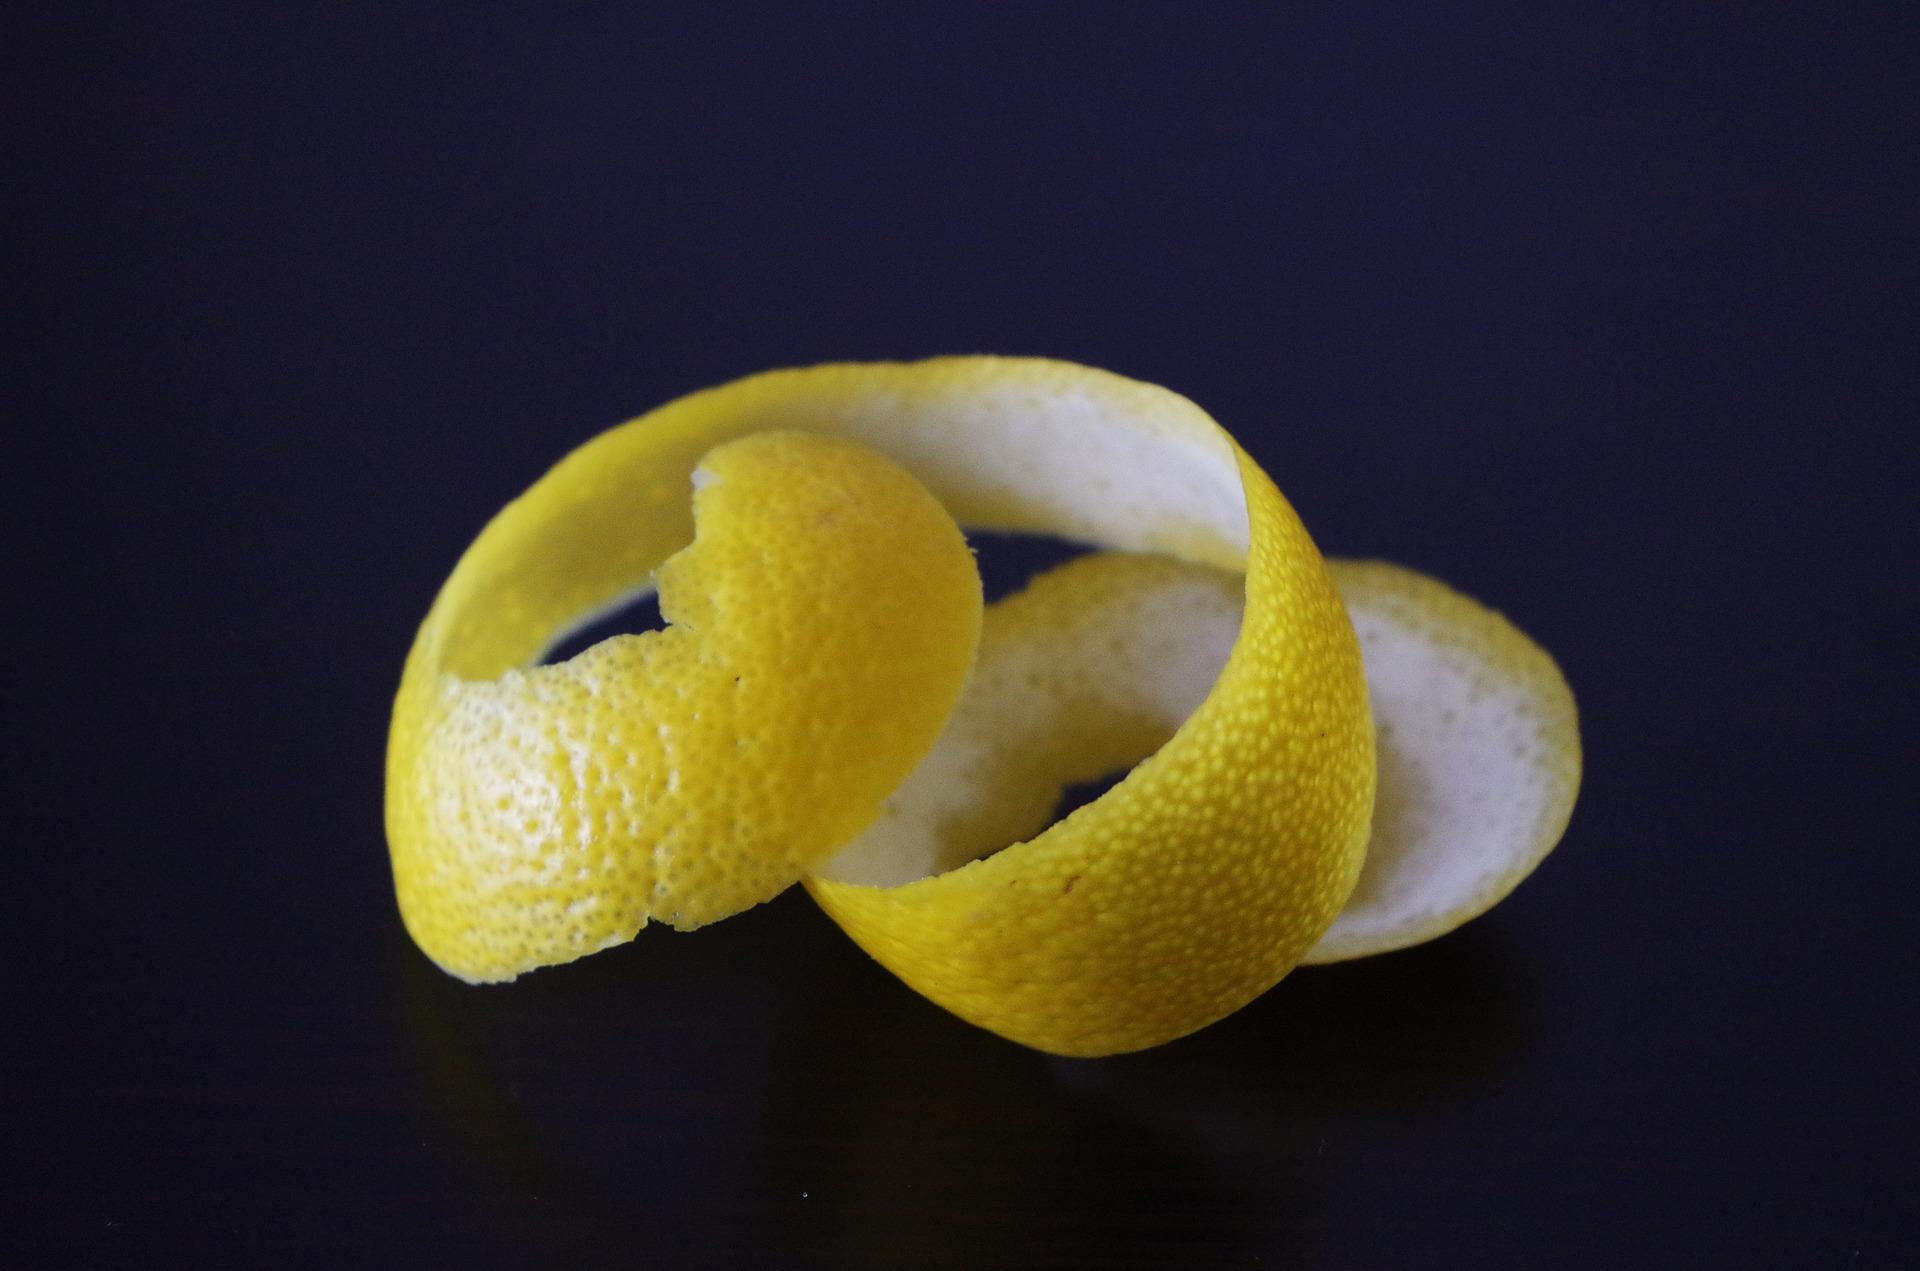 https://pixabay.com/photos/lemon-lemon-peel-peeled-citrus-1313643/